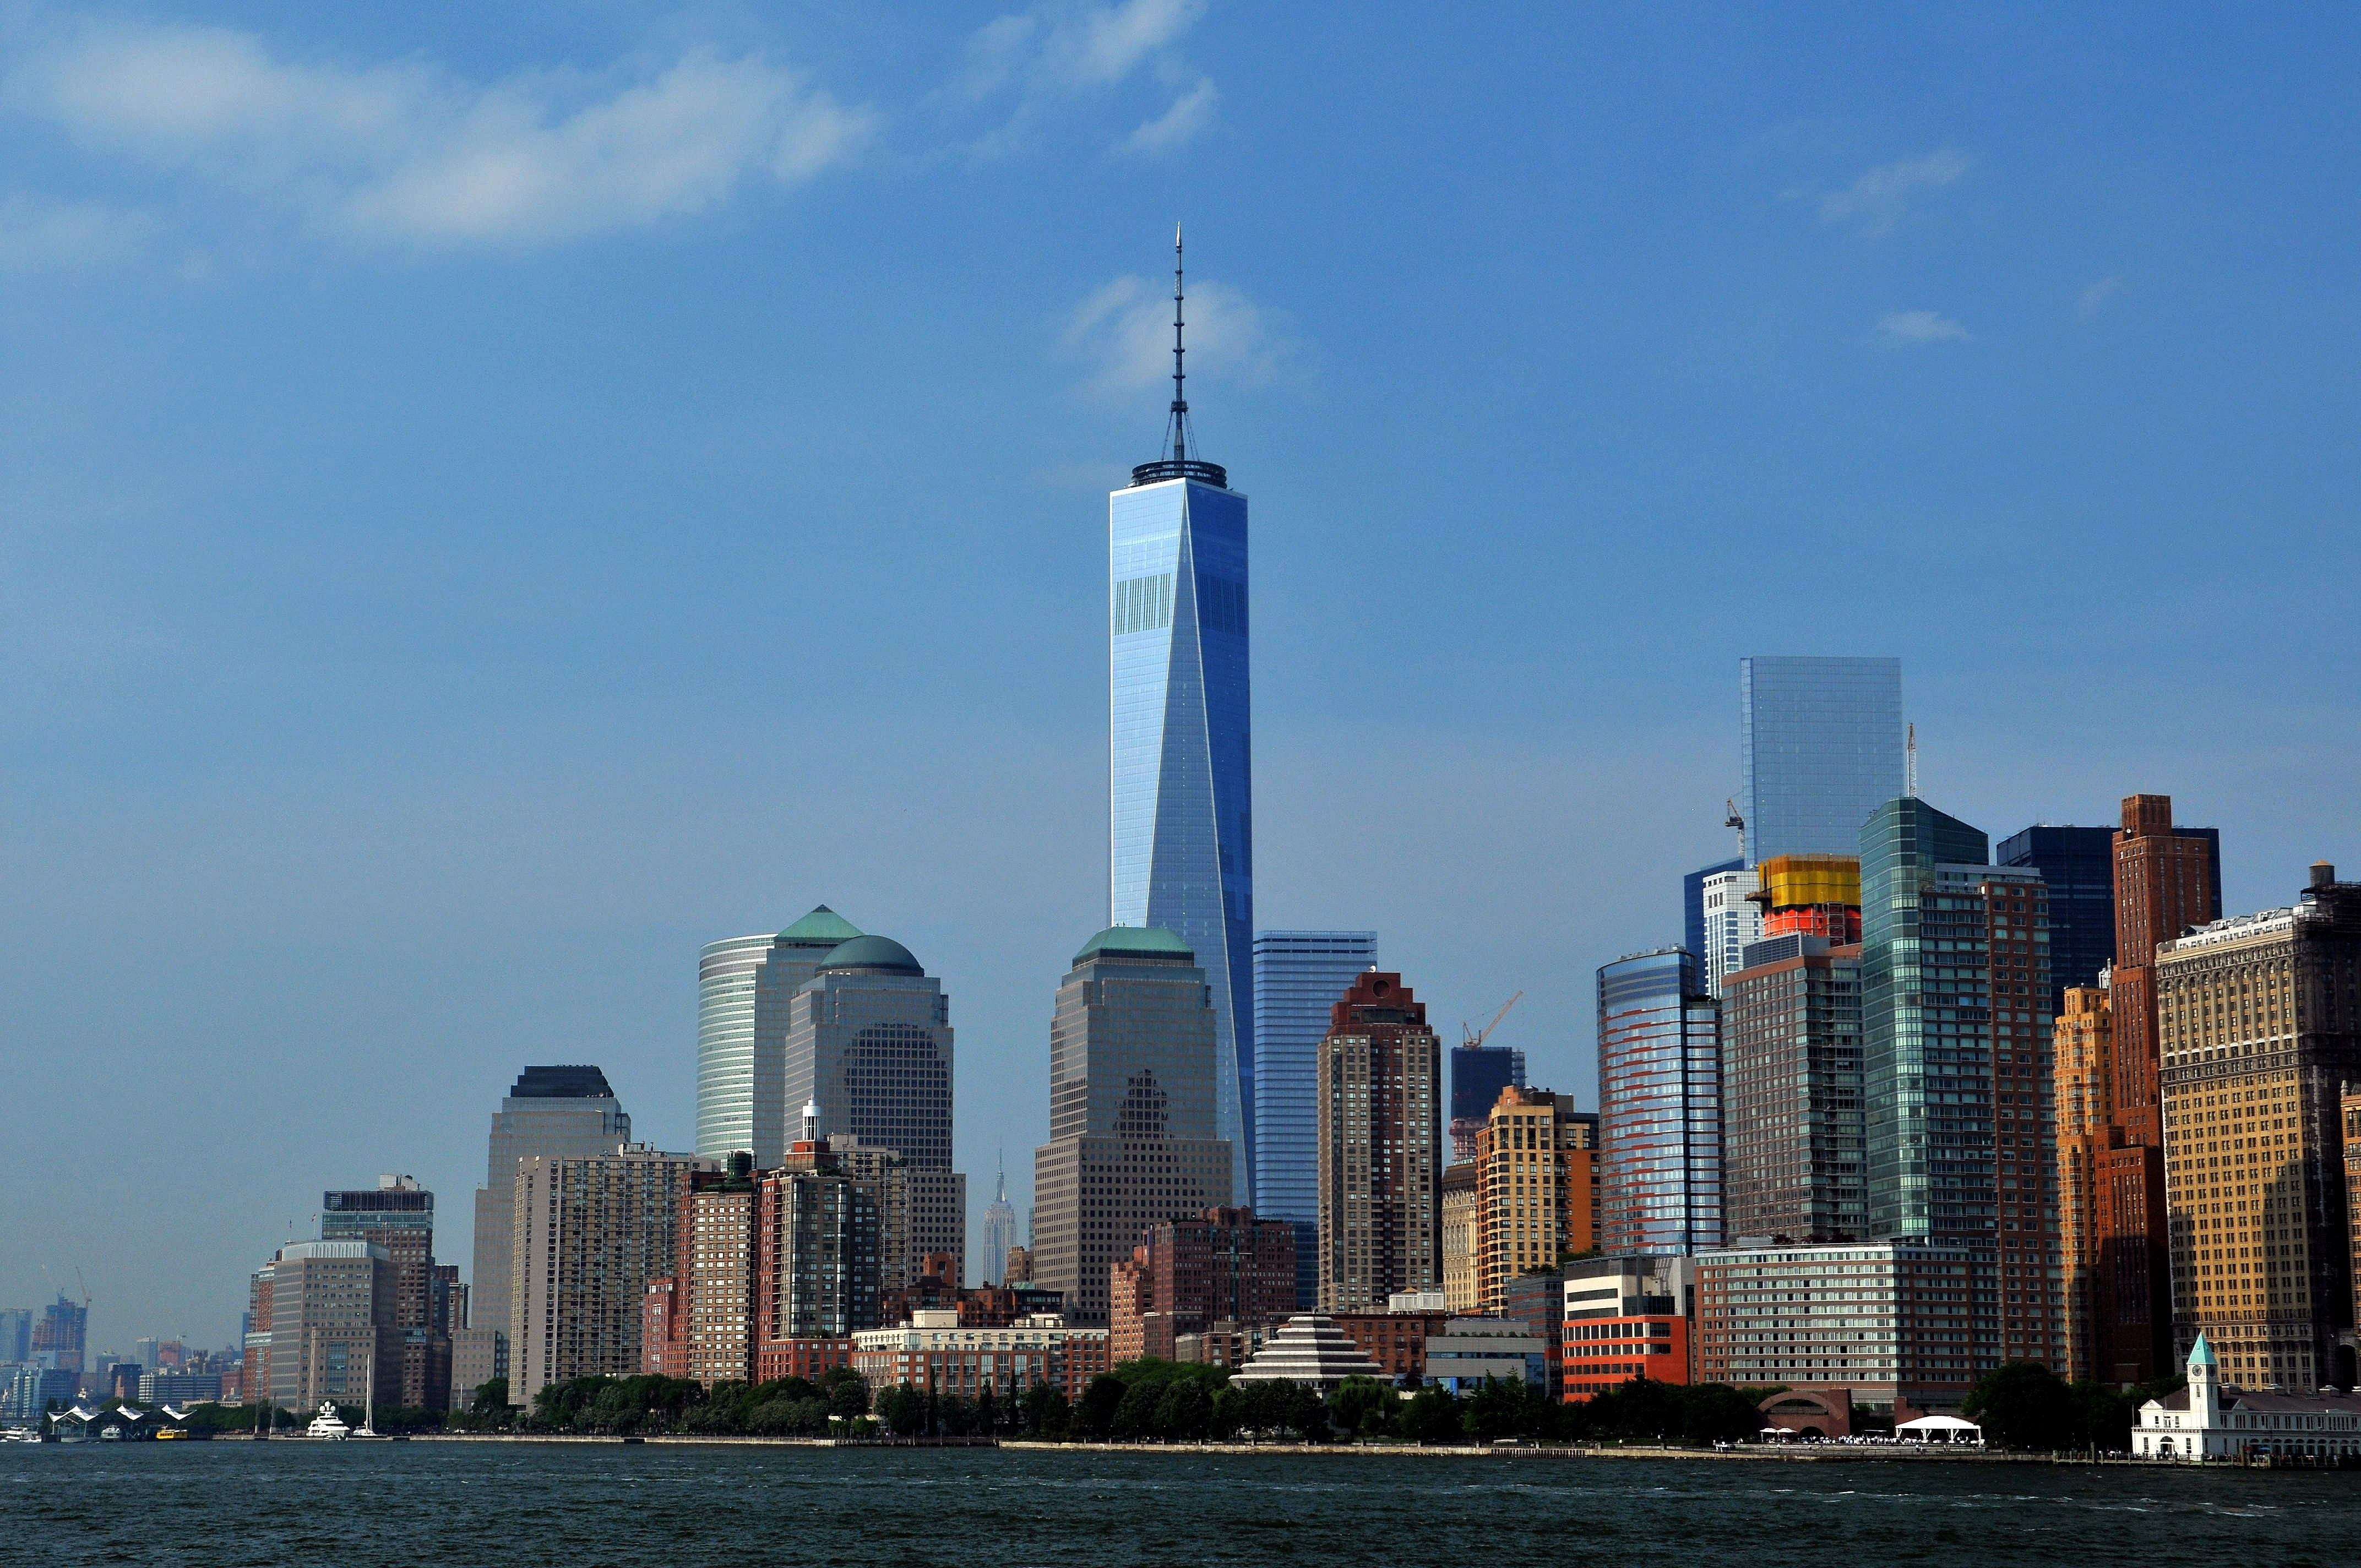 Free Download 1920x1080 Wallpaper One World Trade Center In New